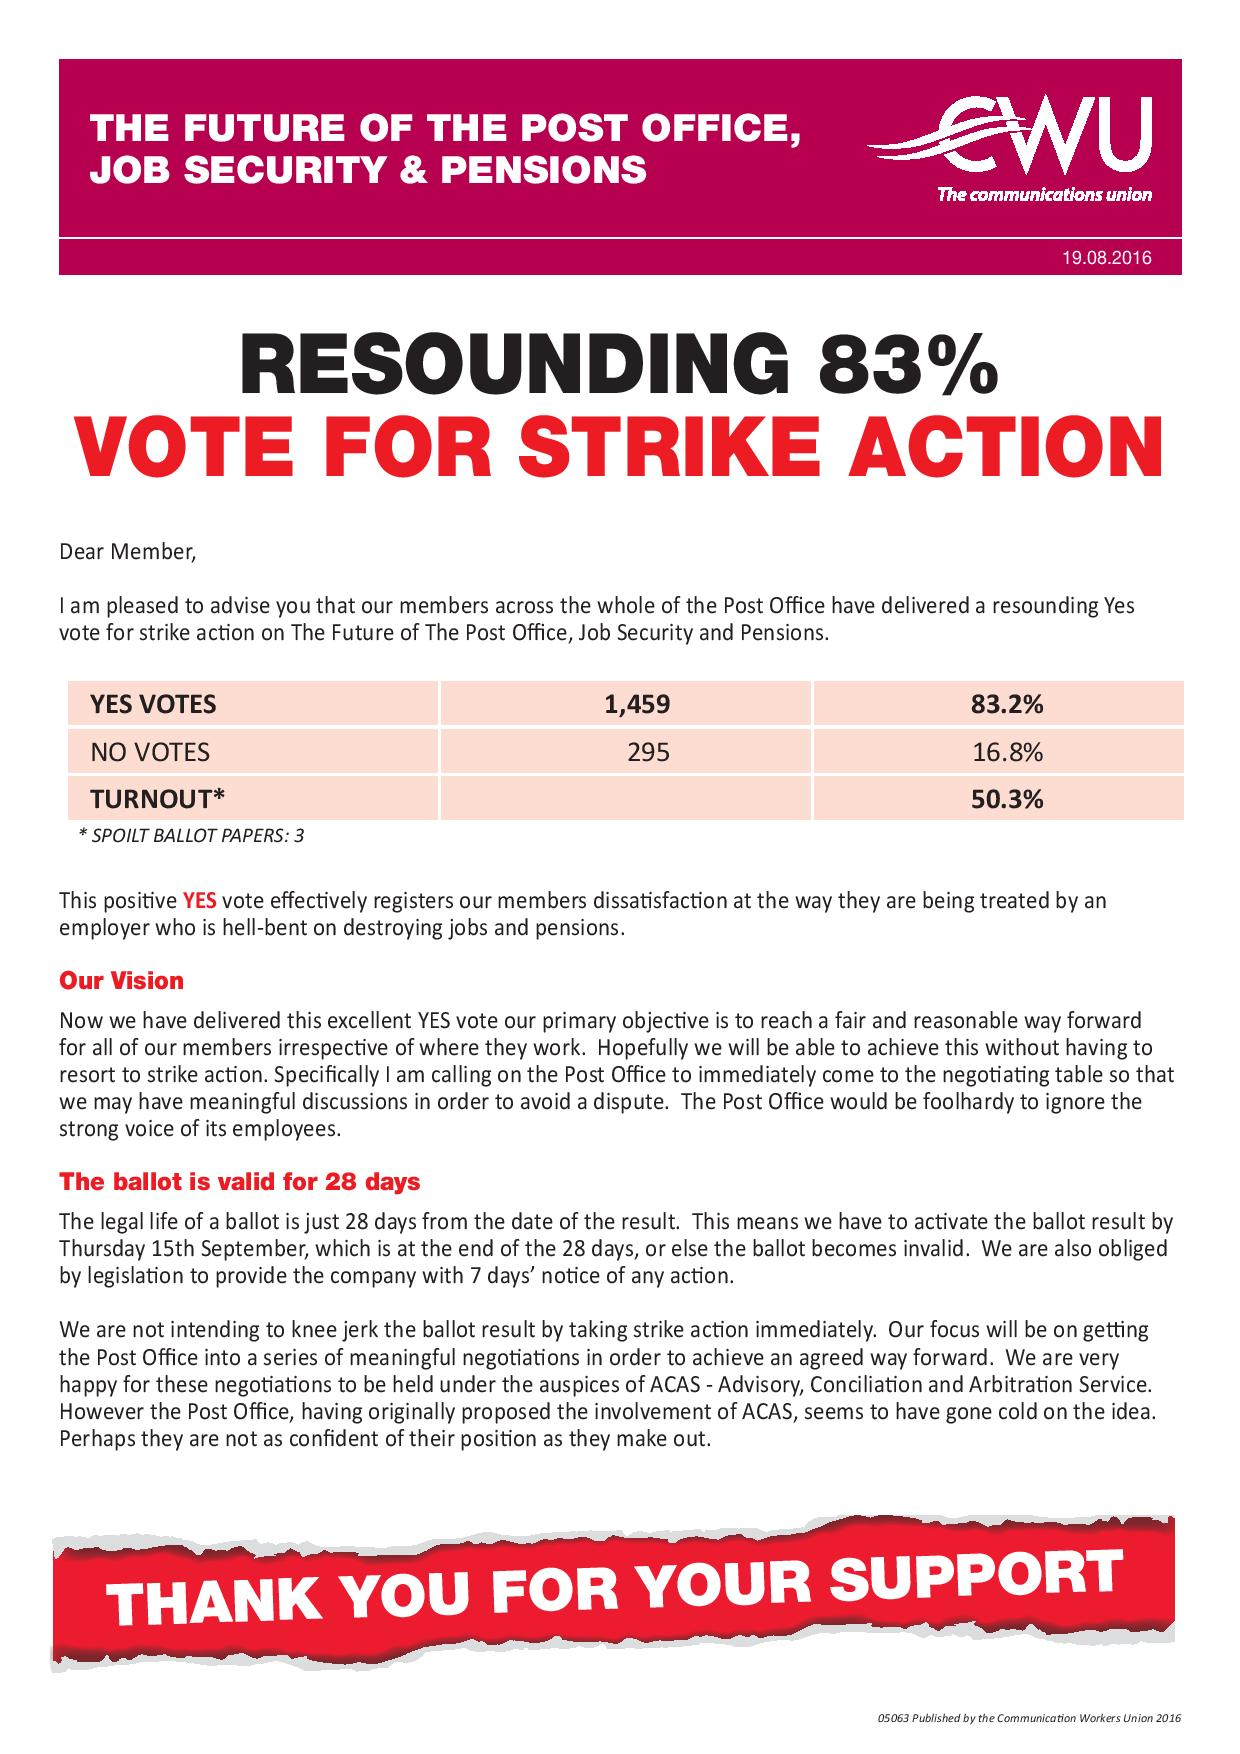 2016.08.19 - 9410 115 05054 YOUR Resounding Vote for Strike Action 19 Aug 2016-page-001